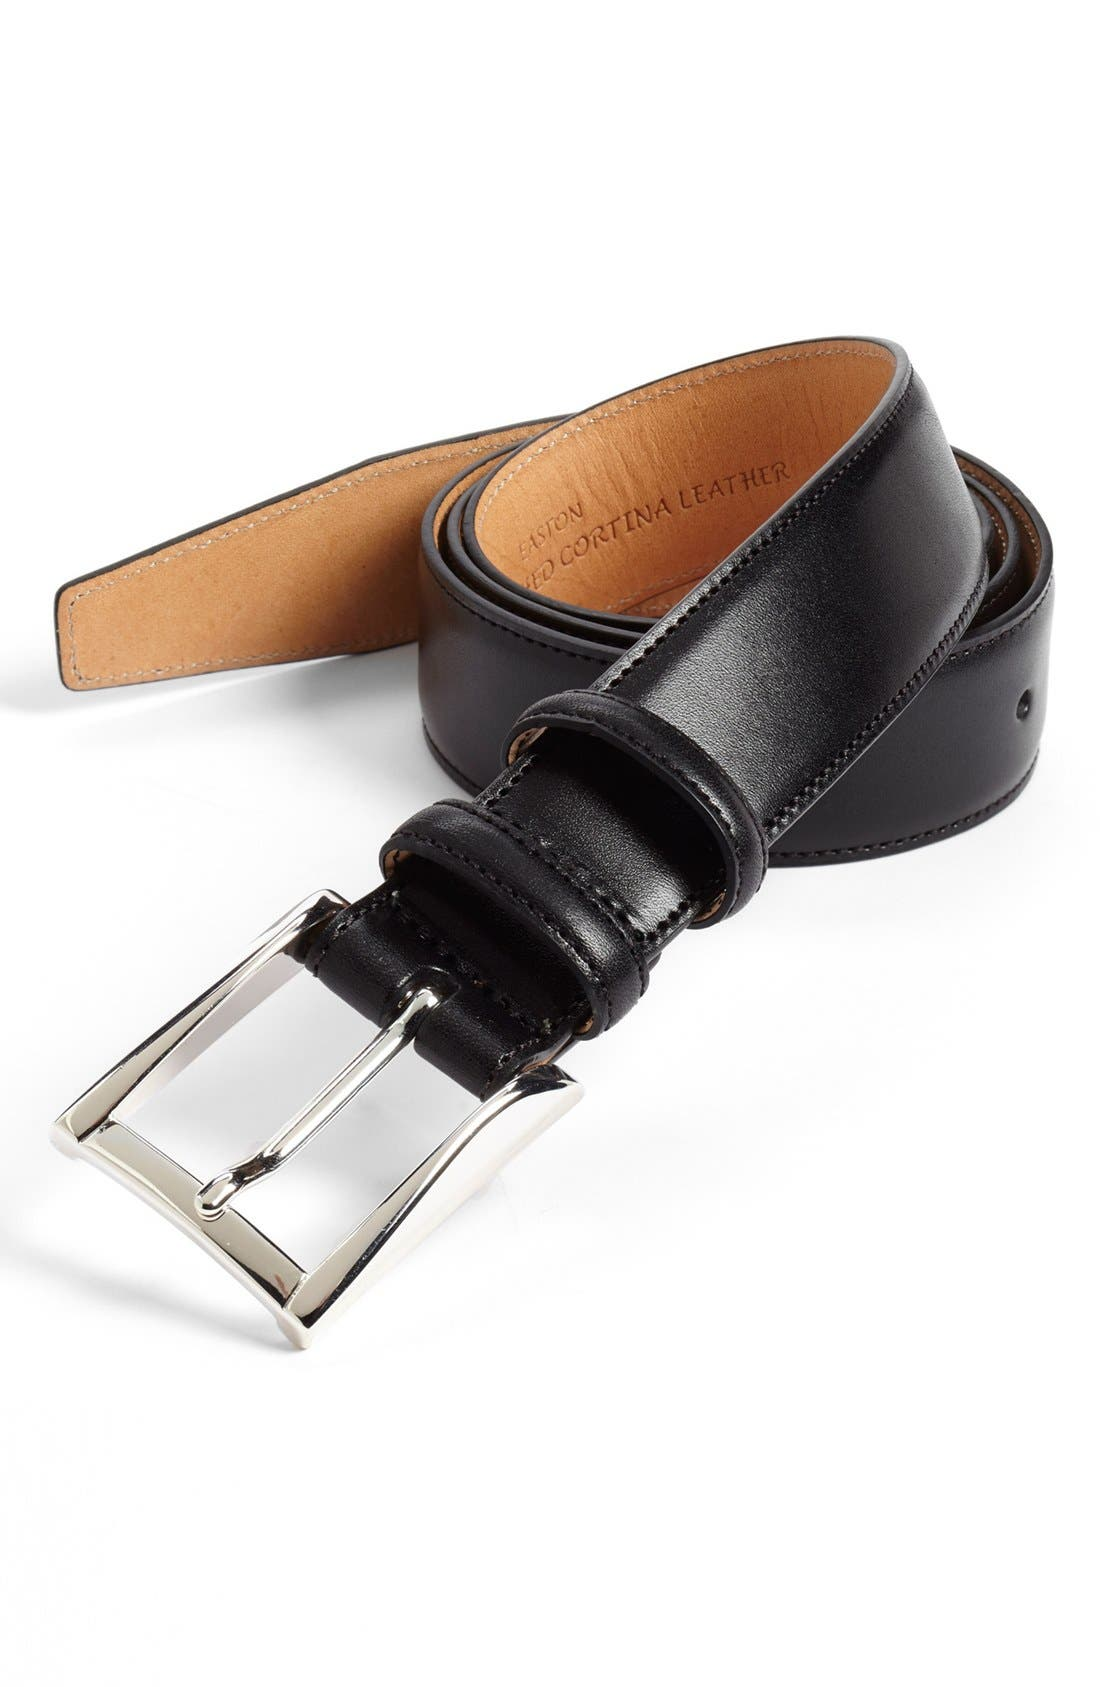 Alternate Image 1 Selected - Trafalgar 'Easton' Calfskin Belt